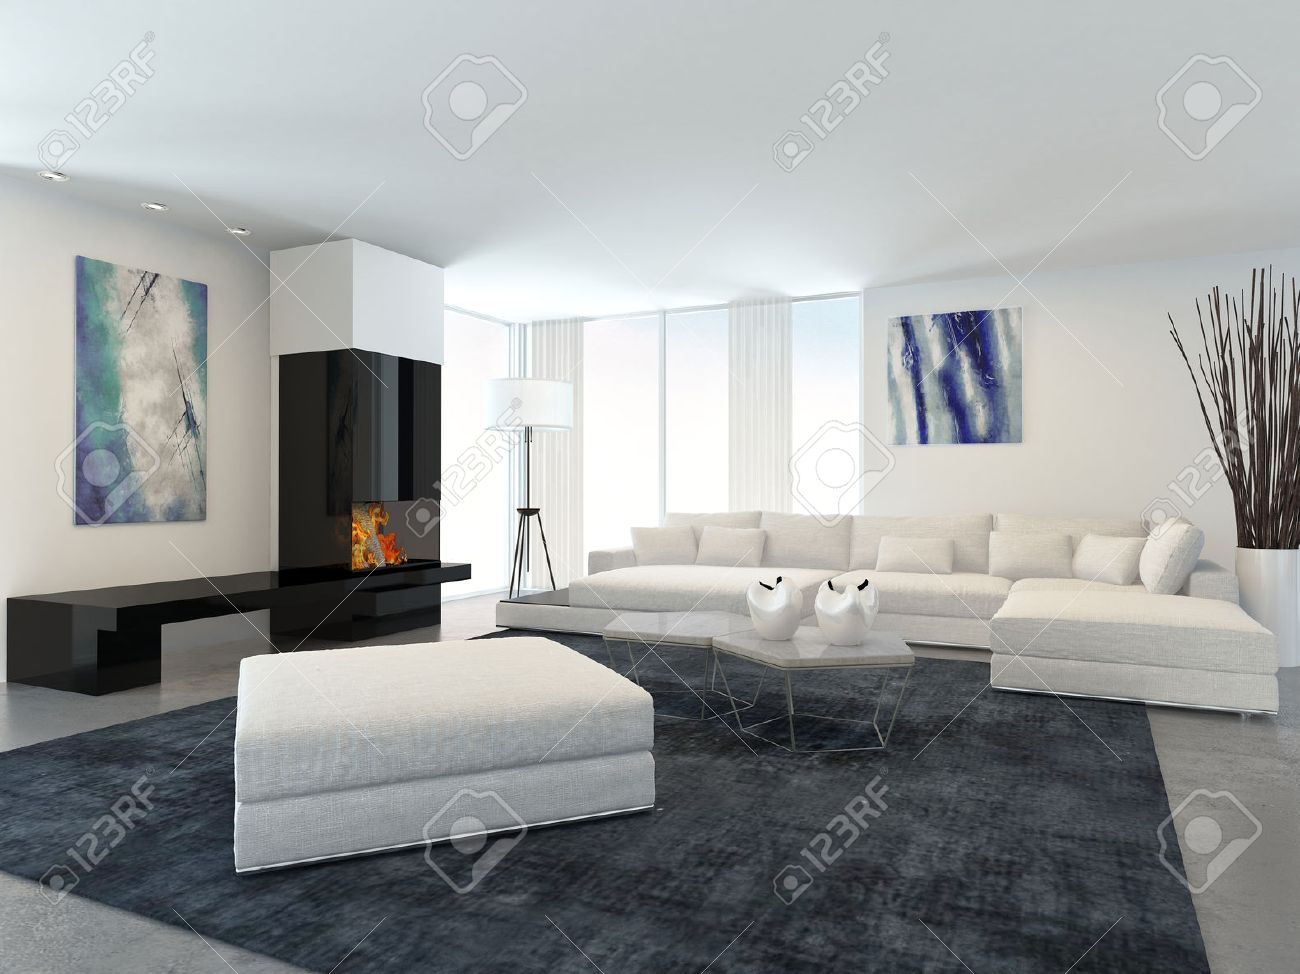 Upholstered Furniture: Interior Of Modern Living Room In Apartment With  Fireplace And White Furniture